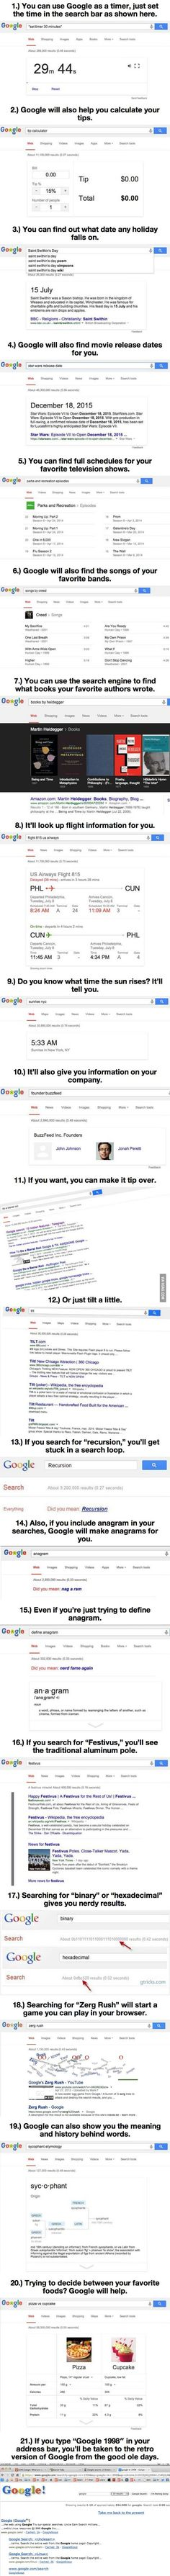 21 Google Hacks Will Blow Your Mind: http://scout.cheatsheet.me/21-google-hacks-will-blow-mind-14-made-day/: